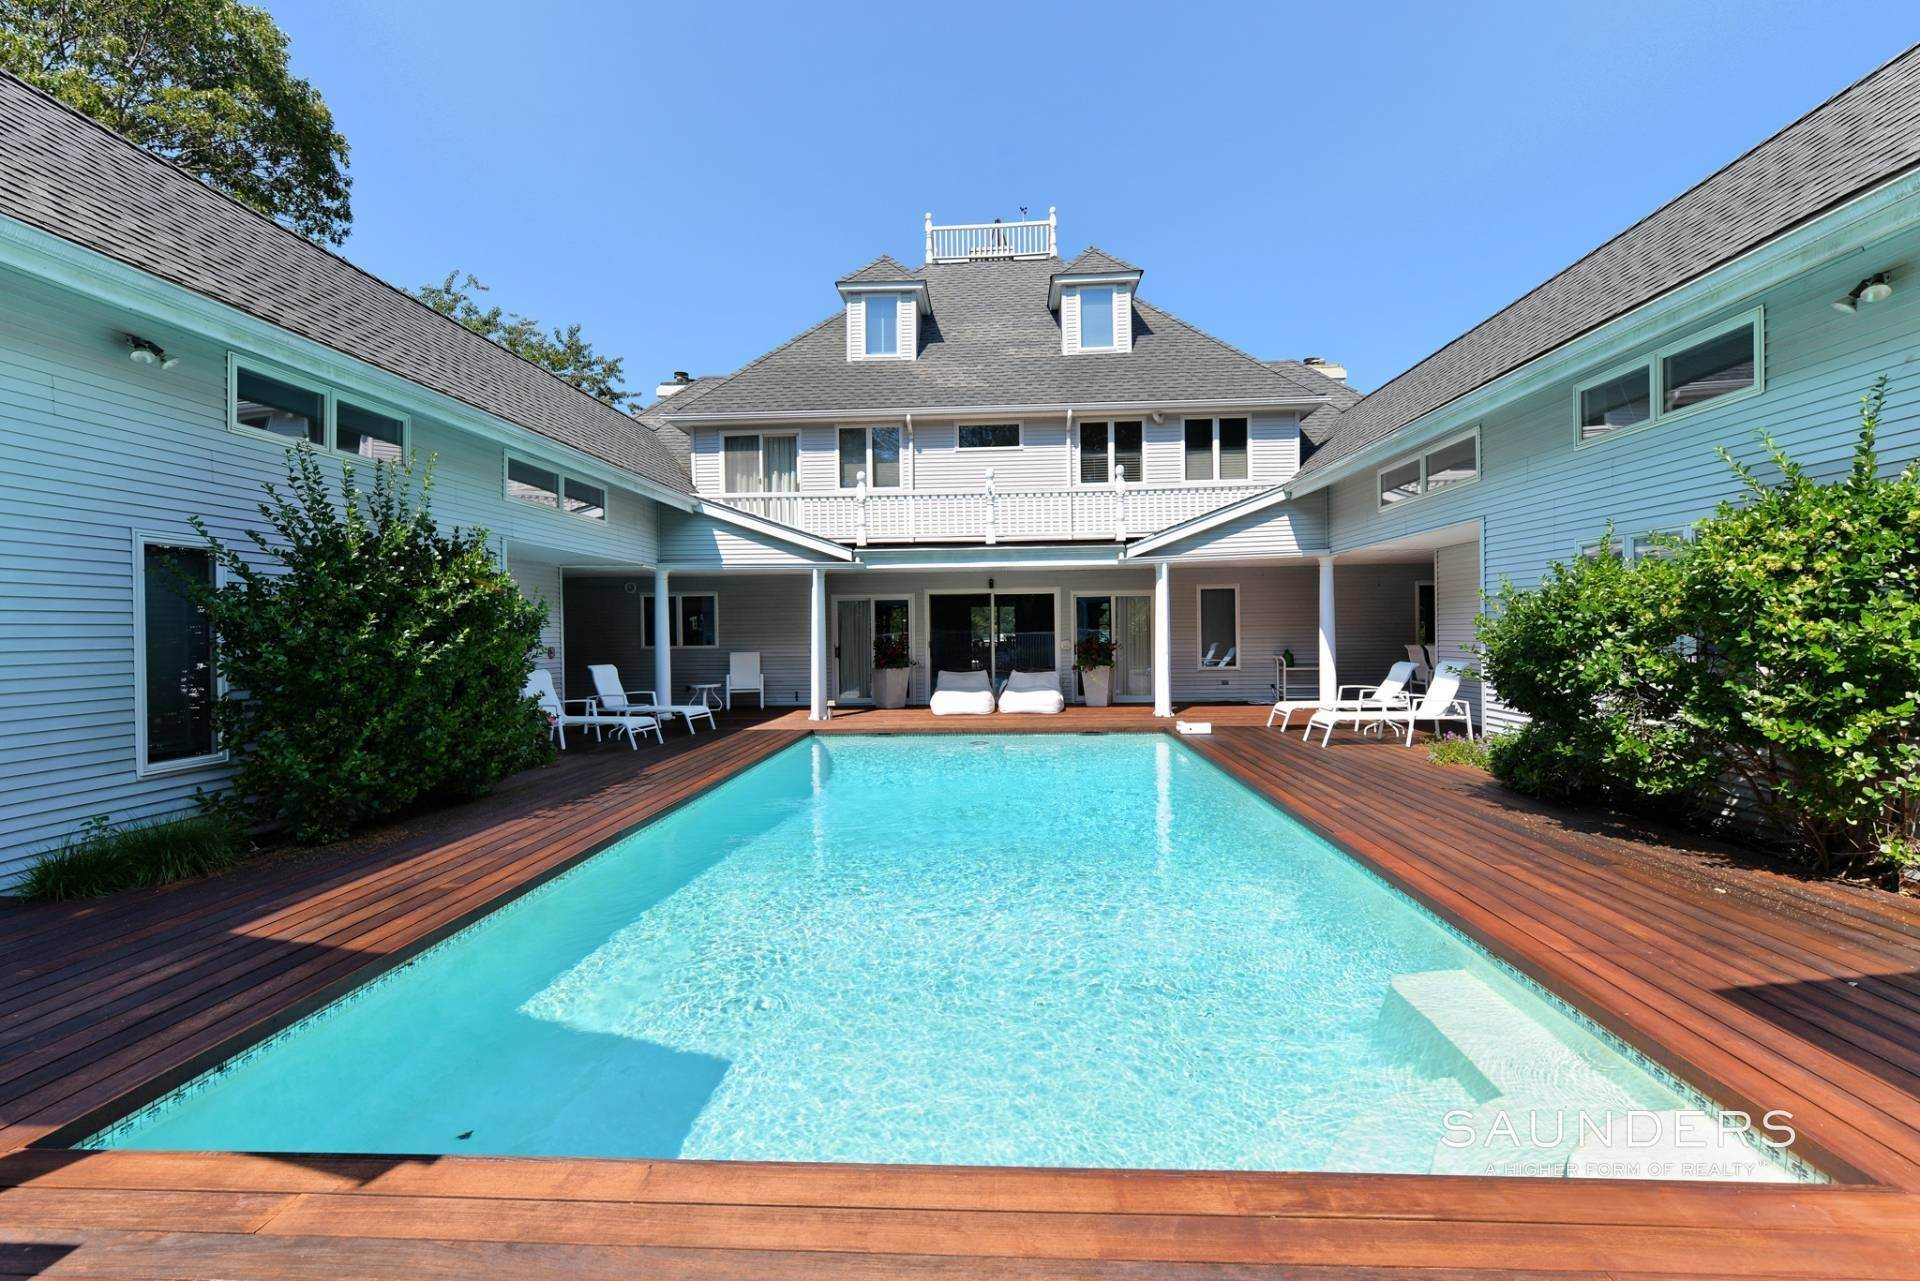 3. Single Family Homes for Sale at Estate Section Compound With Deep Water Dock, Sandy Beach, Pool 58 Westmoreland Drive, Shelter Island Heights, Shelter Island, NY 11964